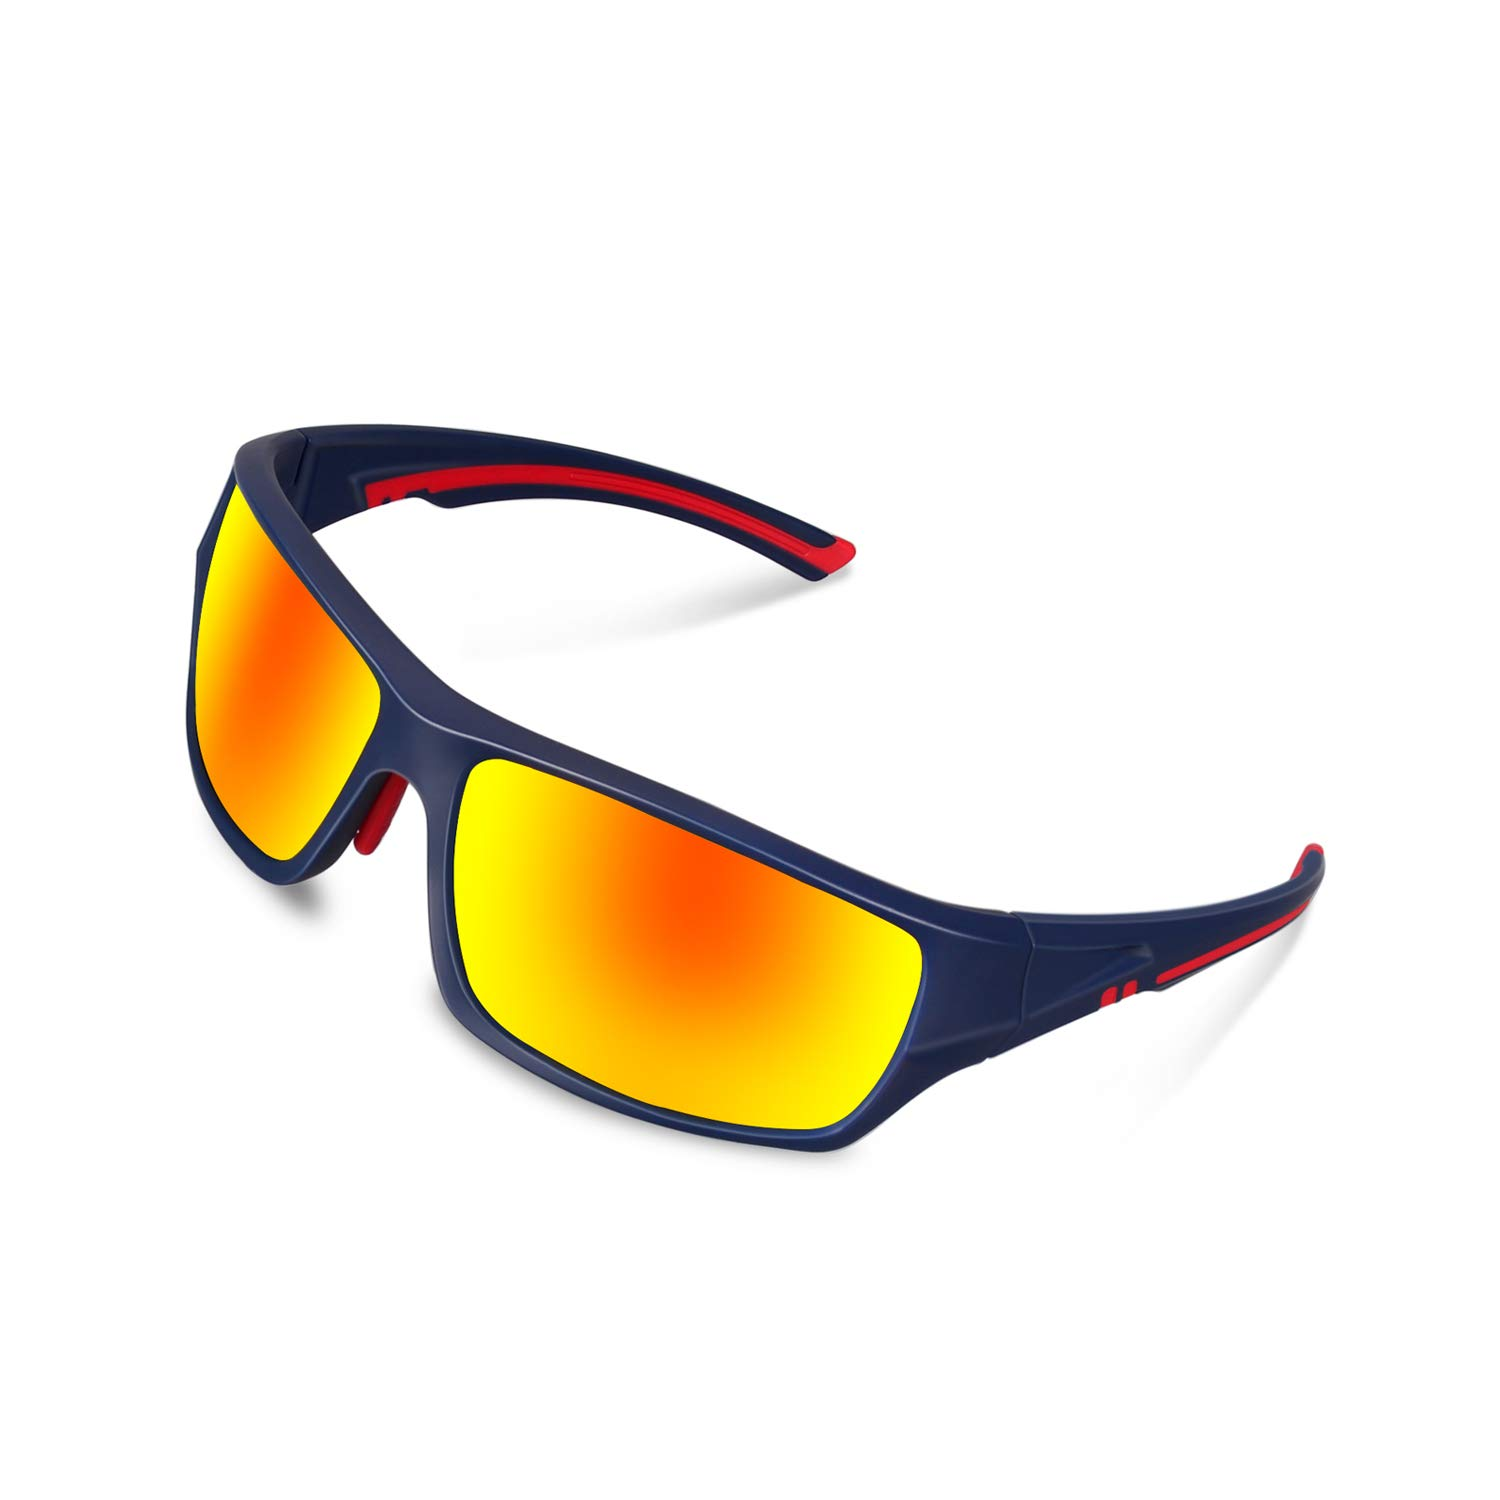 DUIDY Polarized Sports Sunglasses for Men Women Cycling Running Fishing Golf Baseball Softball Tennis UV Protection